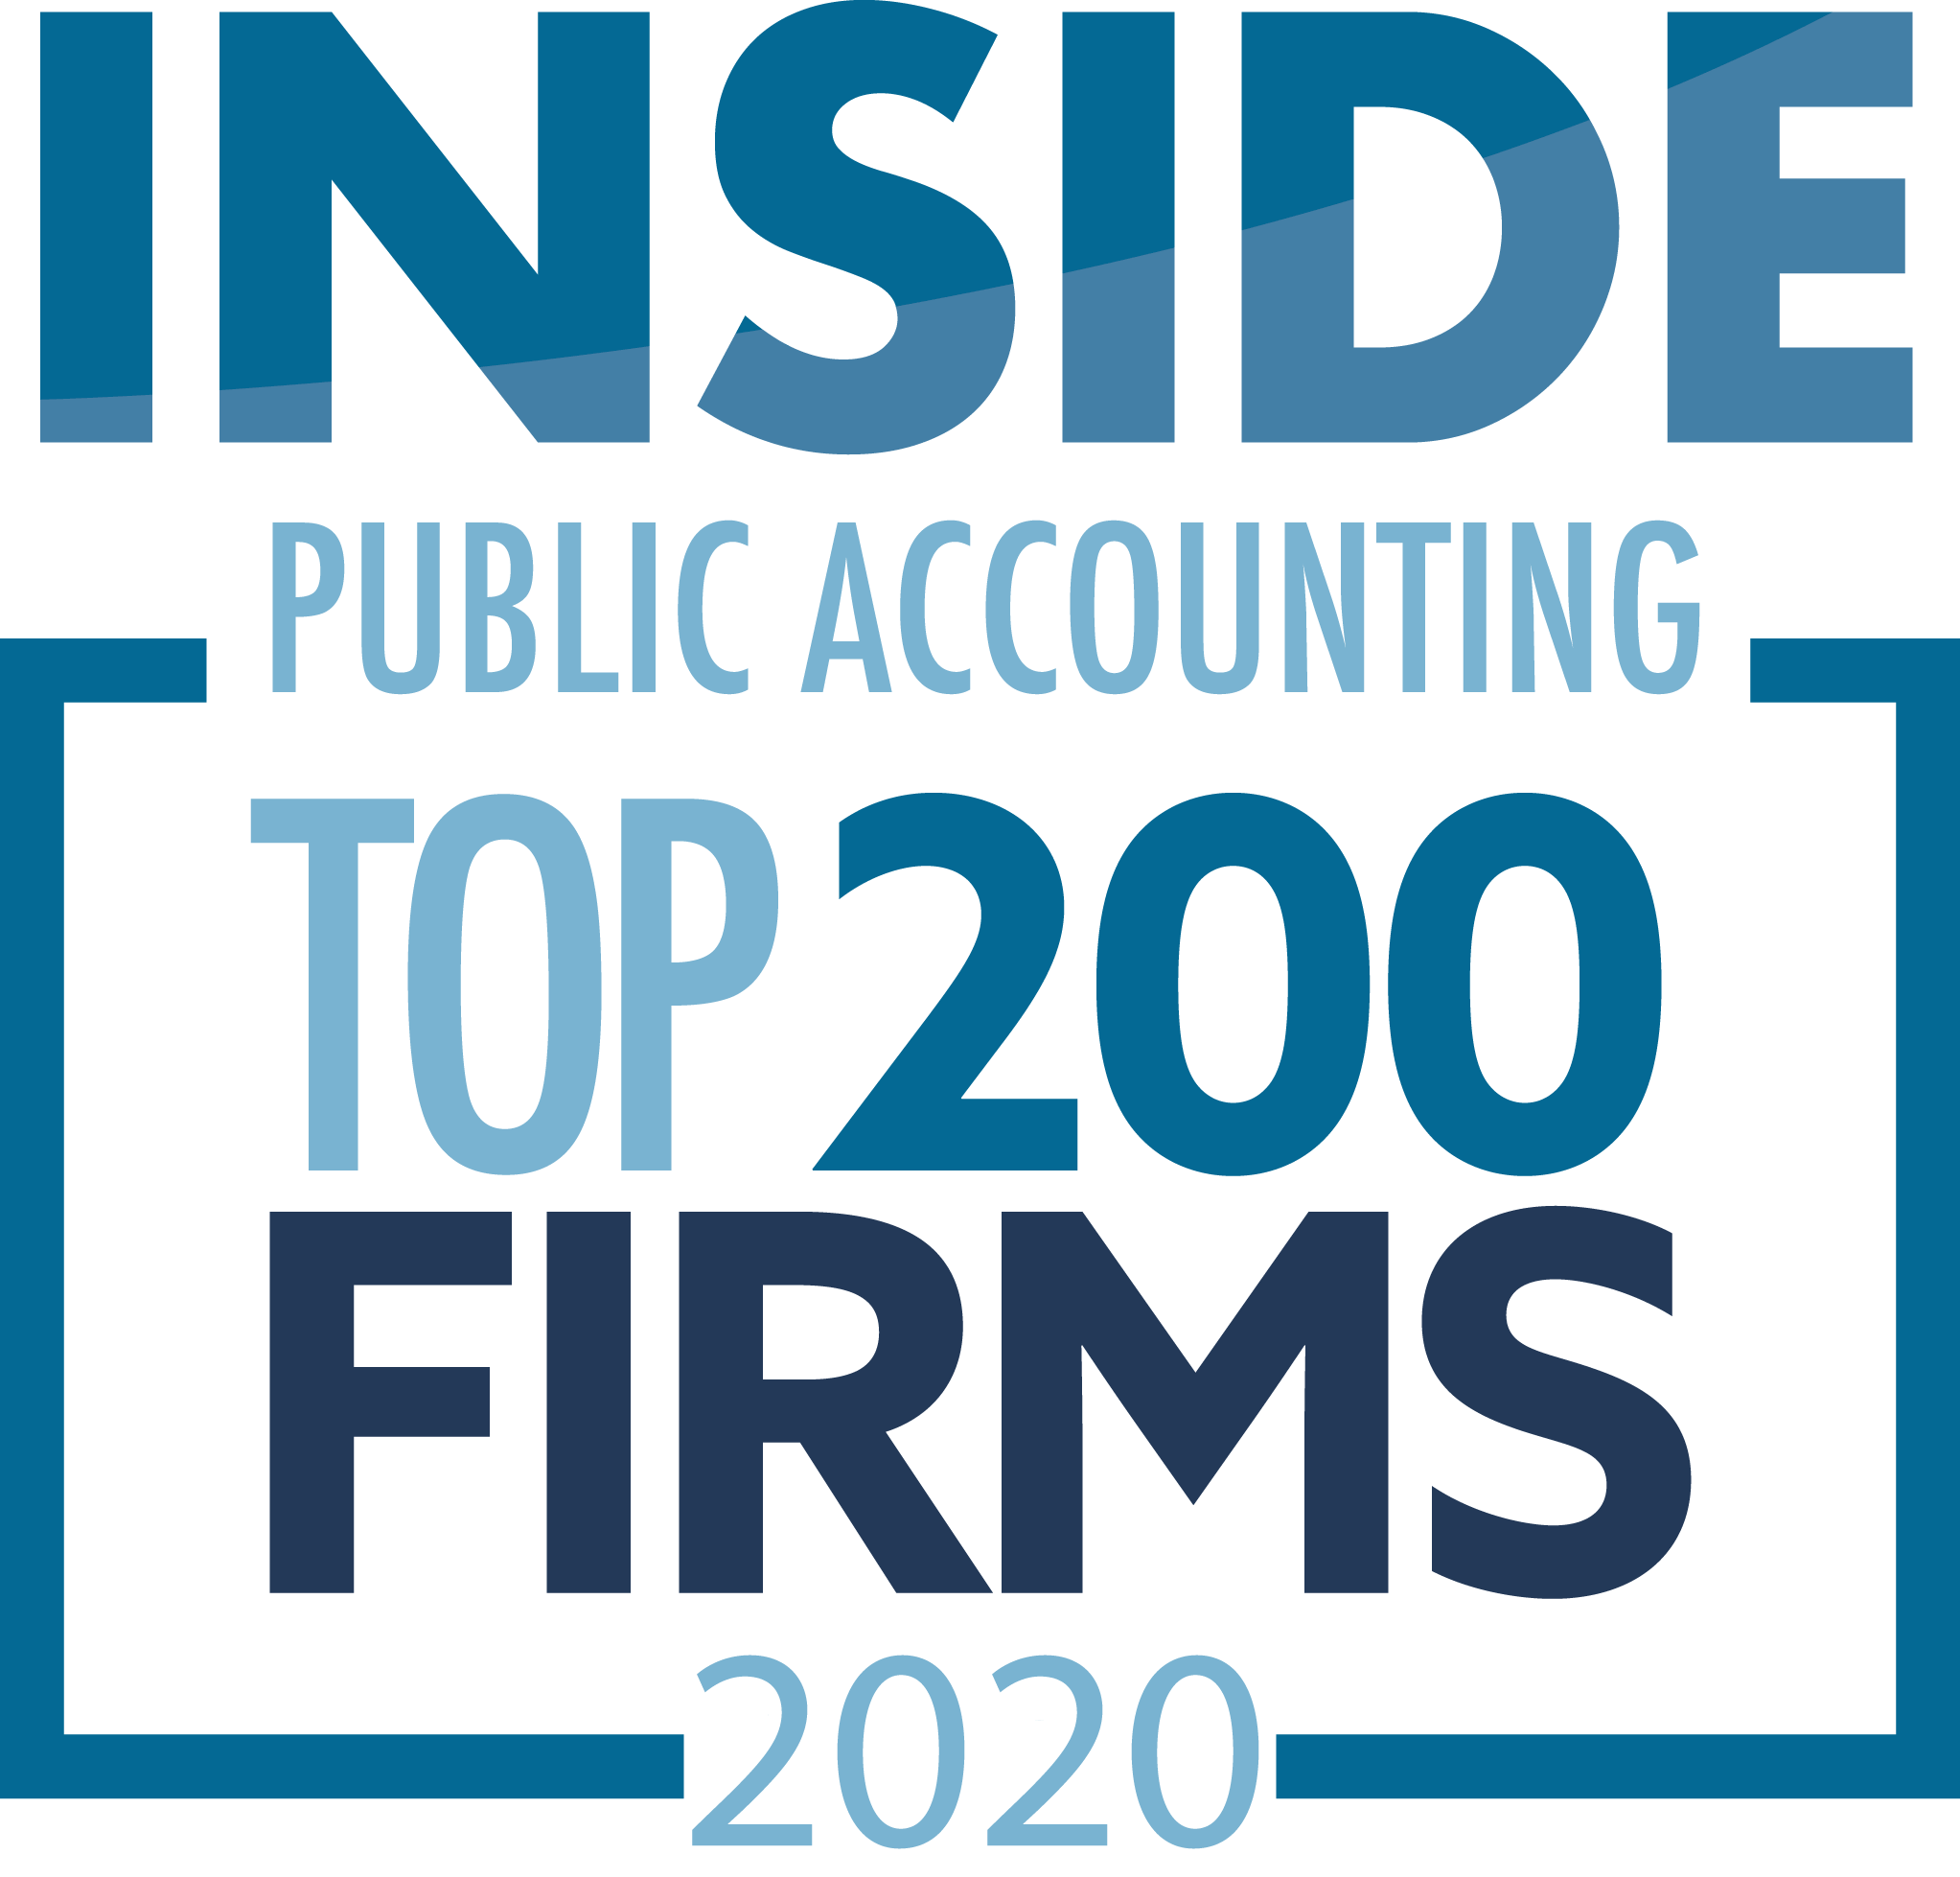 Inside public accounting top 200 firms